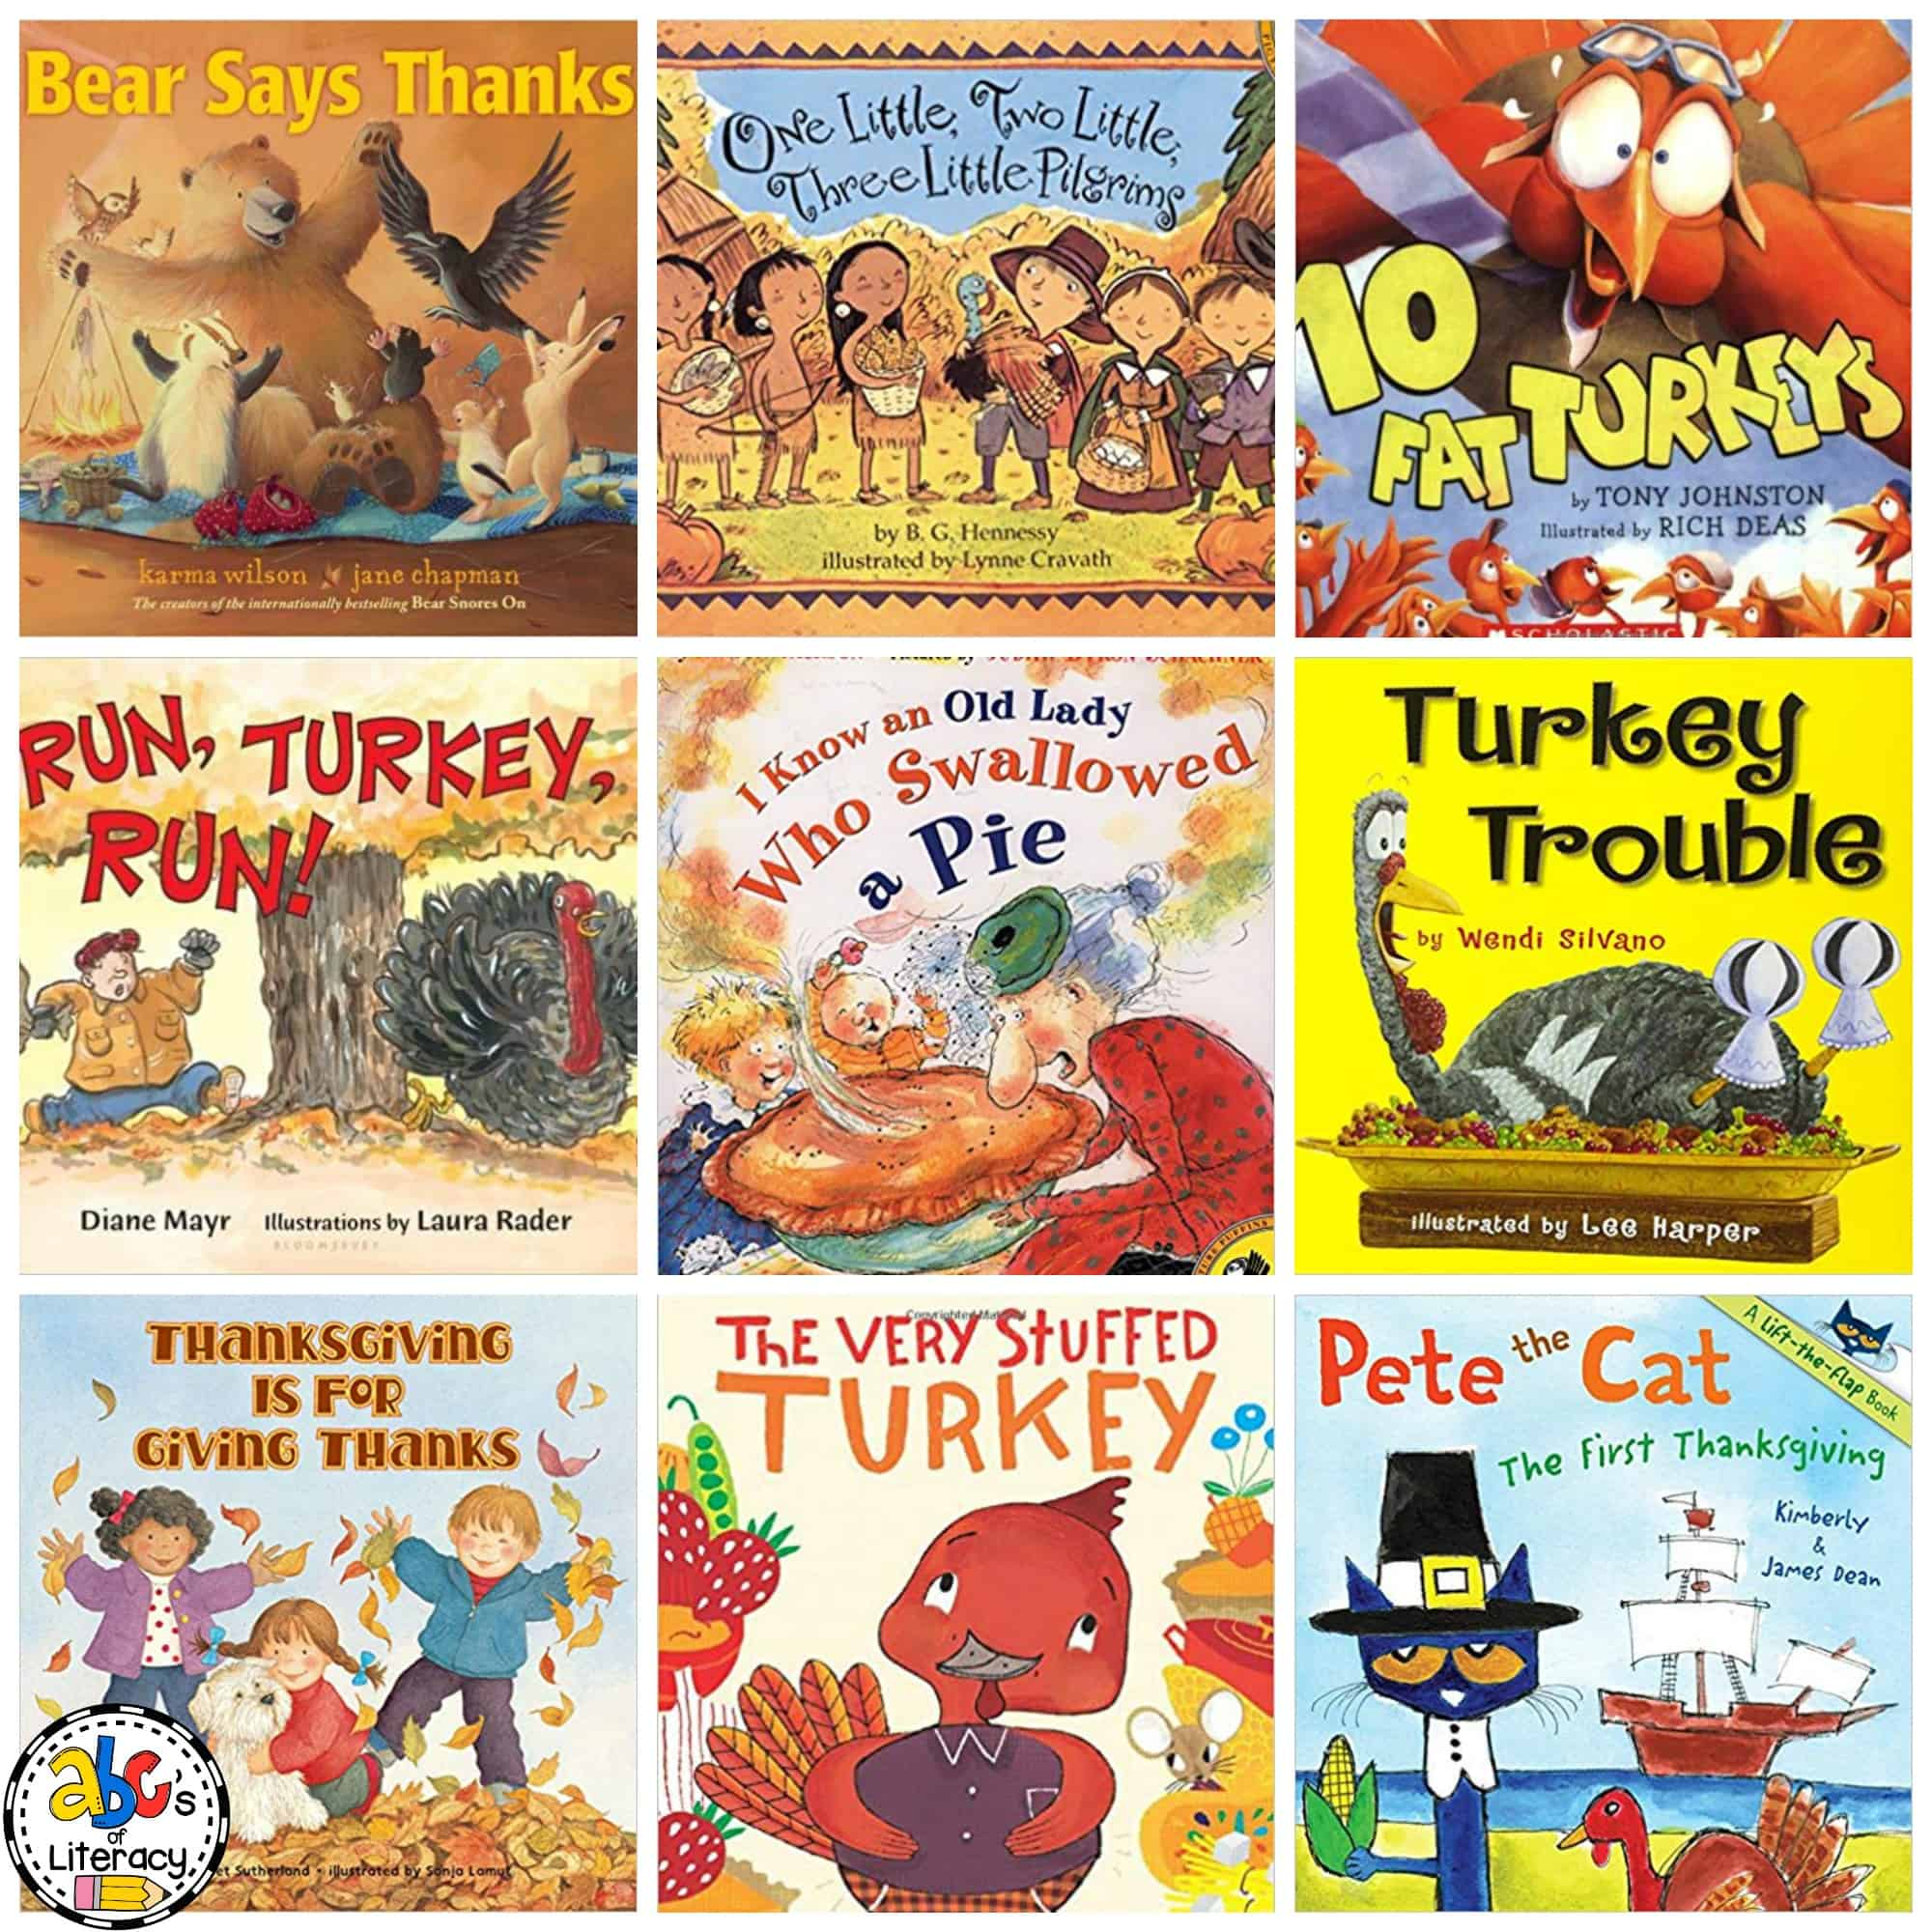 These 10 Thanksgiving Picture Books for young children are all about being thankful, turkeys, family dinner, and the first Thanksgiving.